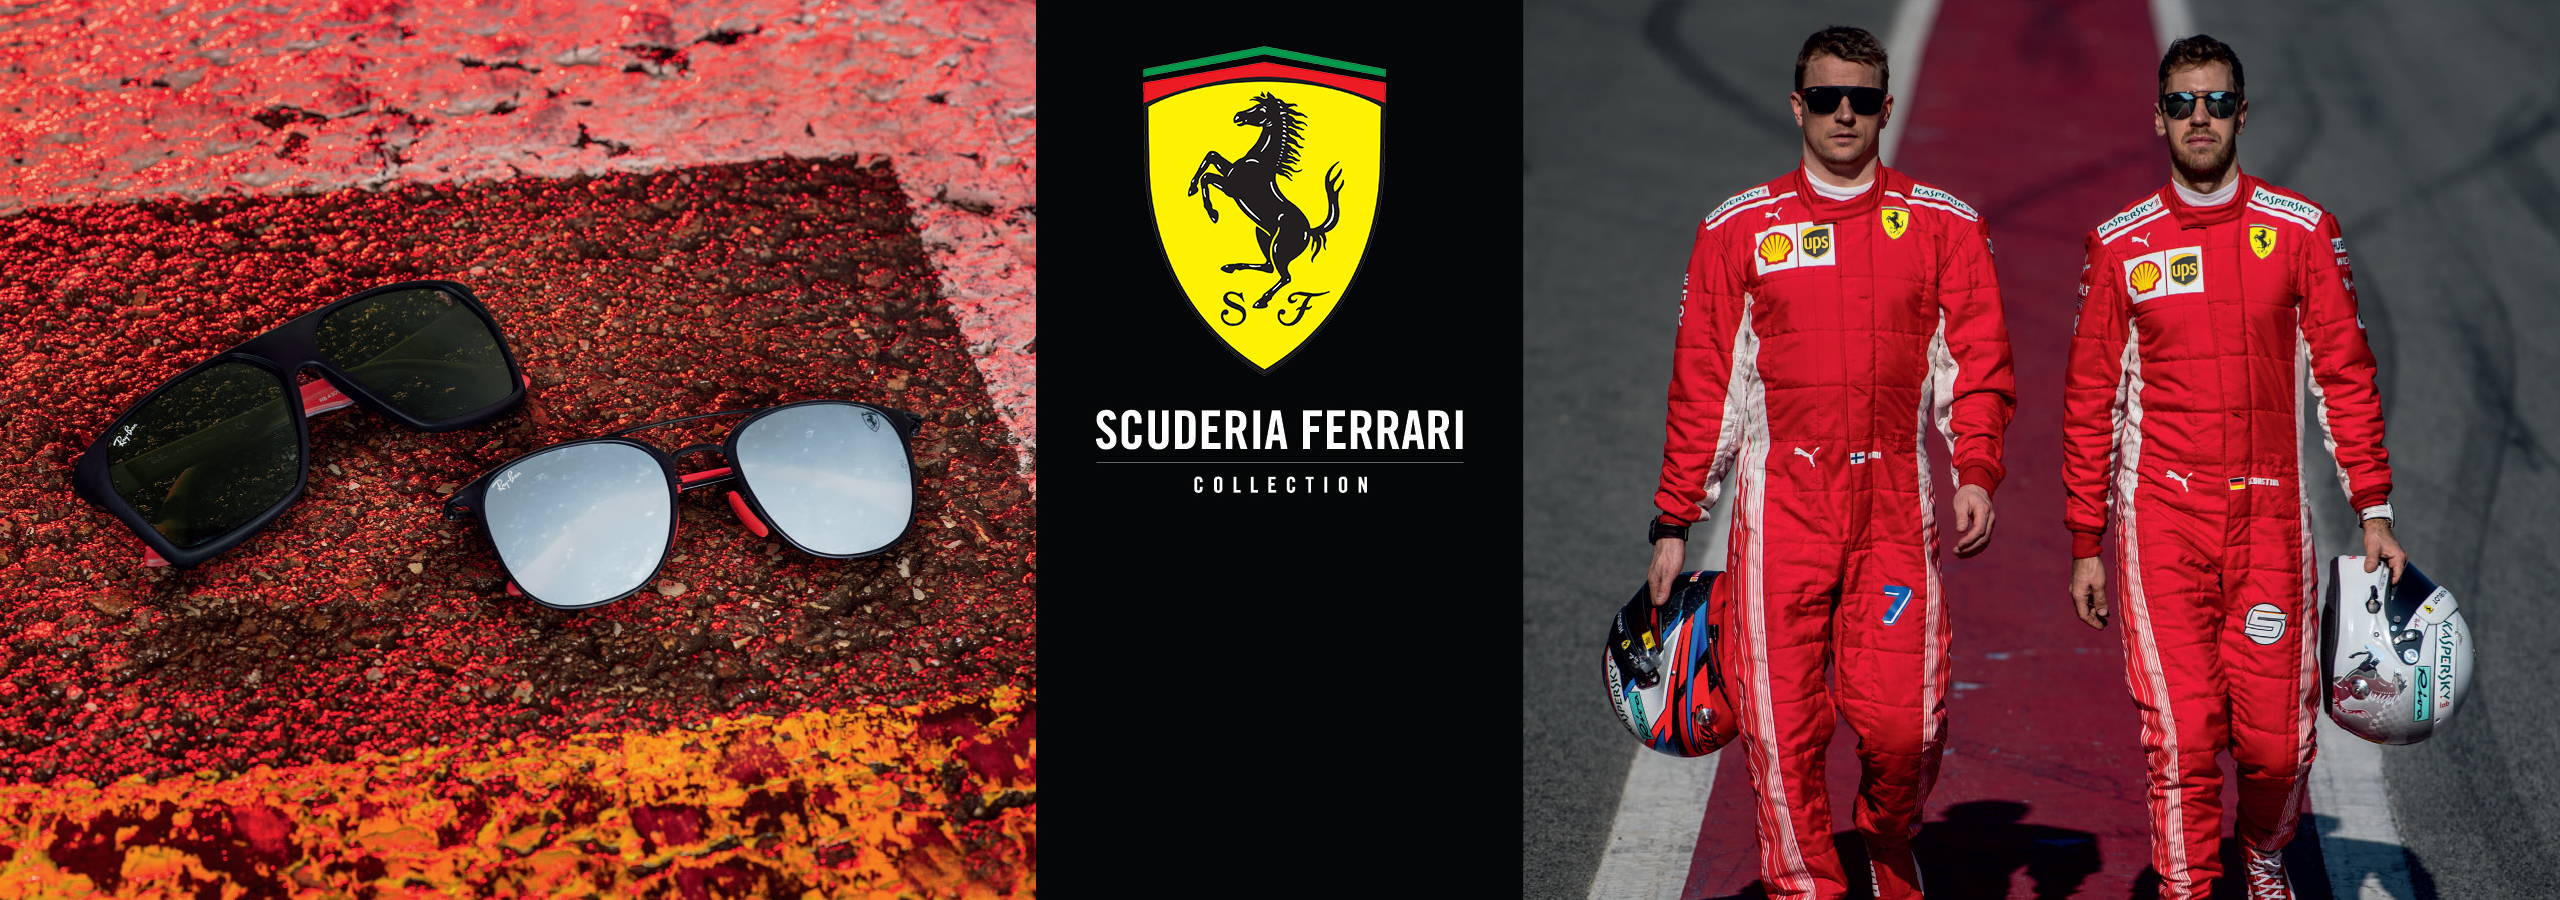 8ecd7d2956 The Ray-Ban Scuderia Ferrari Collection feature unmistakable iconic accents  and a shared passion for tradition and innovation.